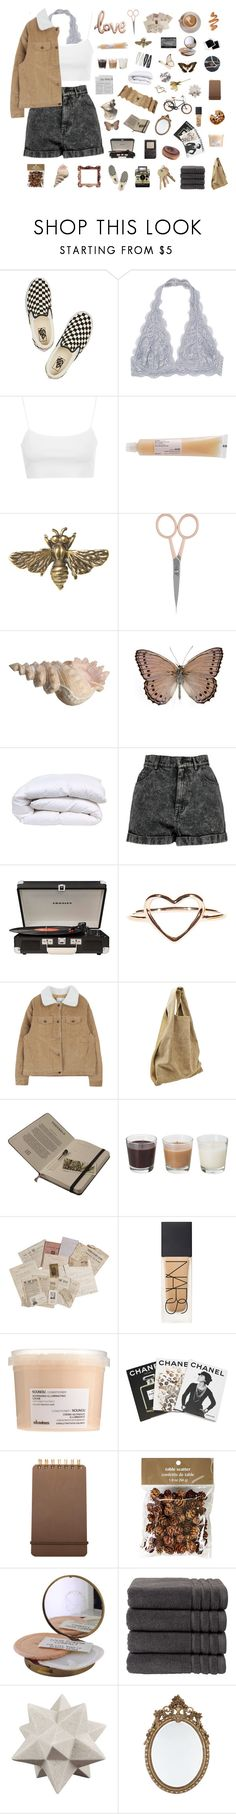 """"""" FLUTTER ON AUTUMN BABY """" by j-essx-f ❤ liked on Polyvore featuring Vans, Topshop, Davines, Alkemie, Anastasia Beverly Hills, Boohoo, Crosley, Alexander Wang, Haeckels and NARS Cosmetics"""